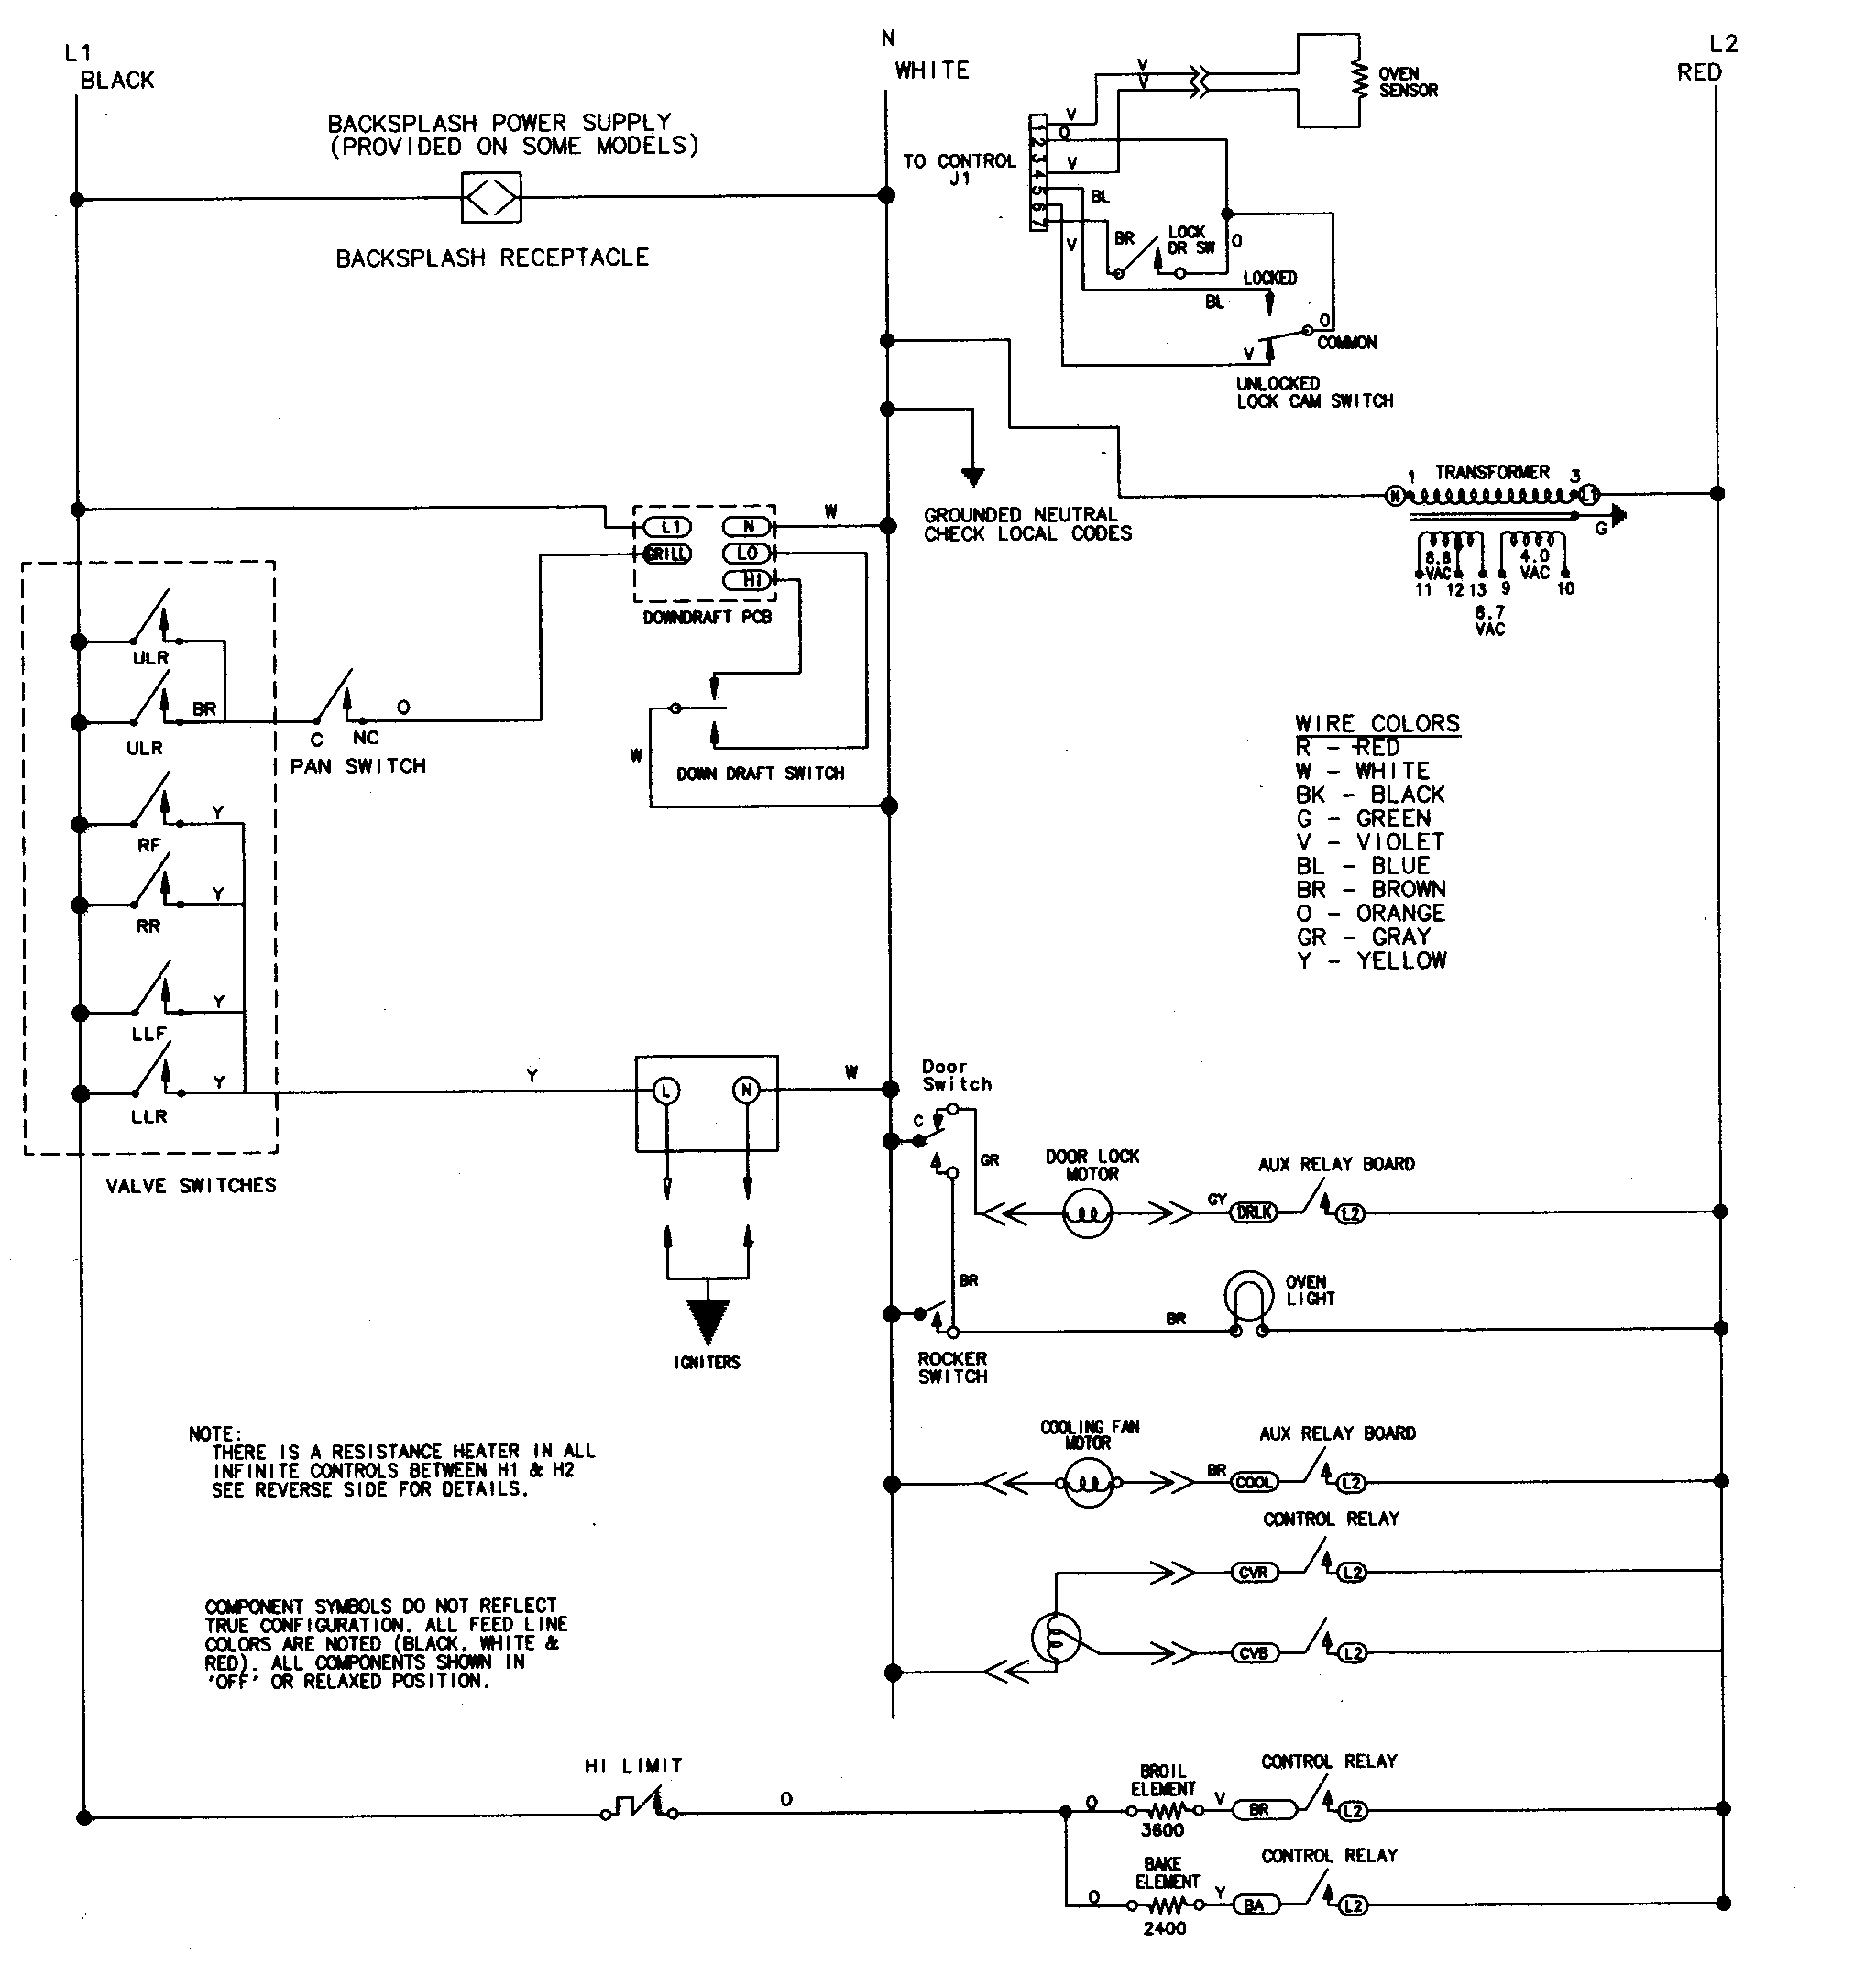 Ge Appliances Wiring Schematic Diagram Will Be A Thing Refrigerator Circuit Electric Fireplace And Get Free Image Motor Schematics